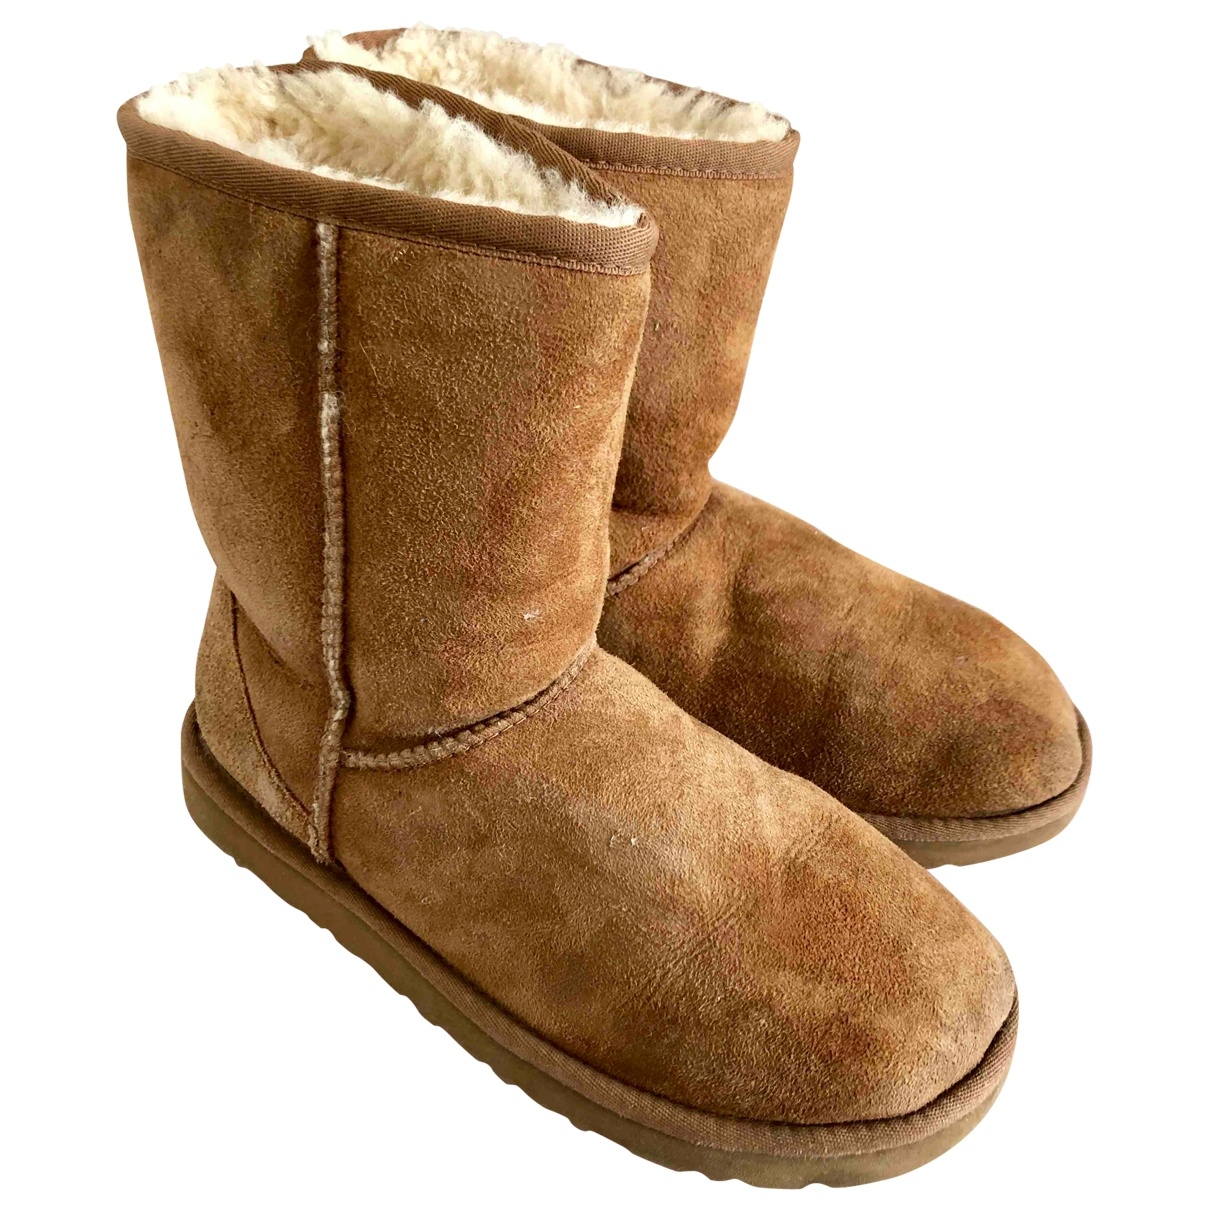 Ugg \N Camel Suede Ankle boots for Women 7 US